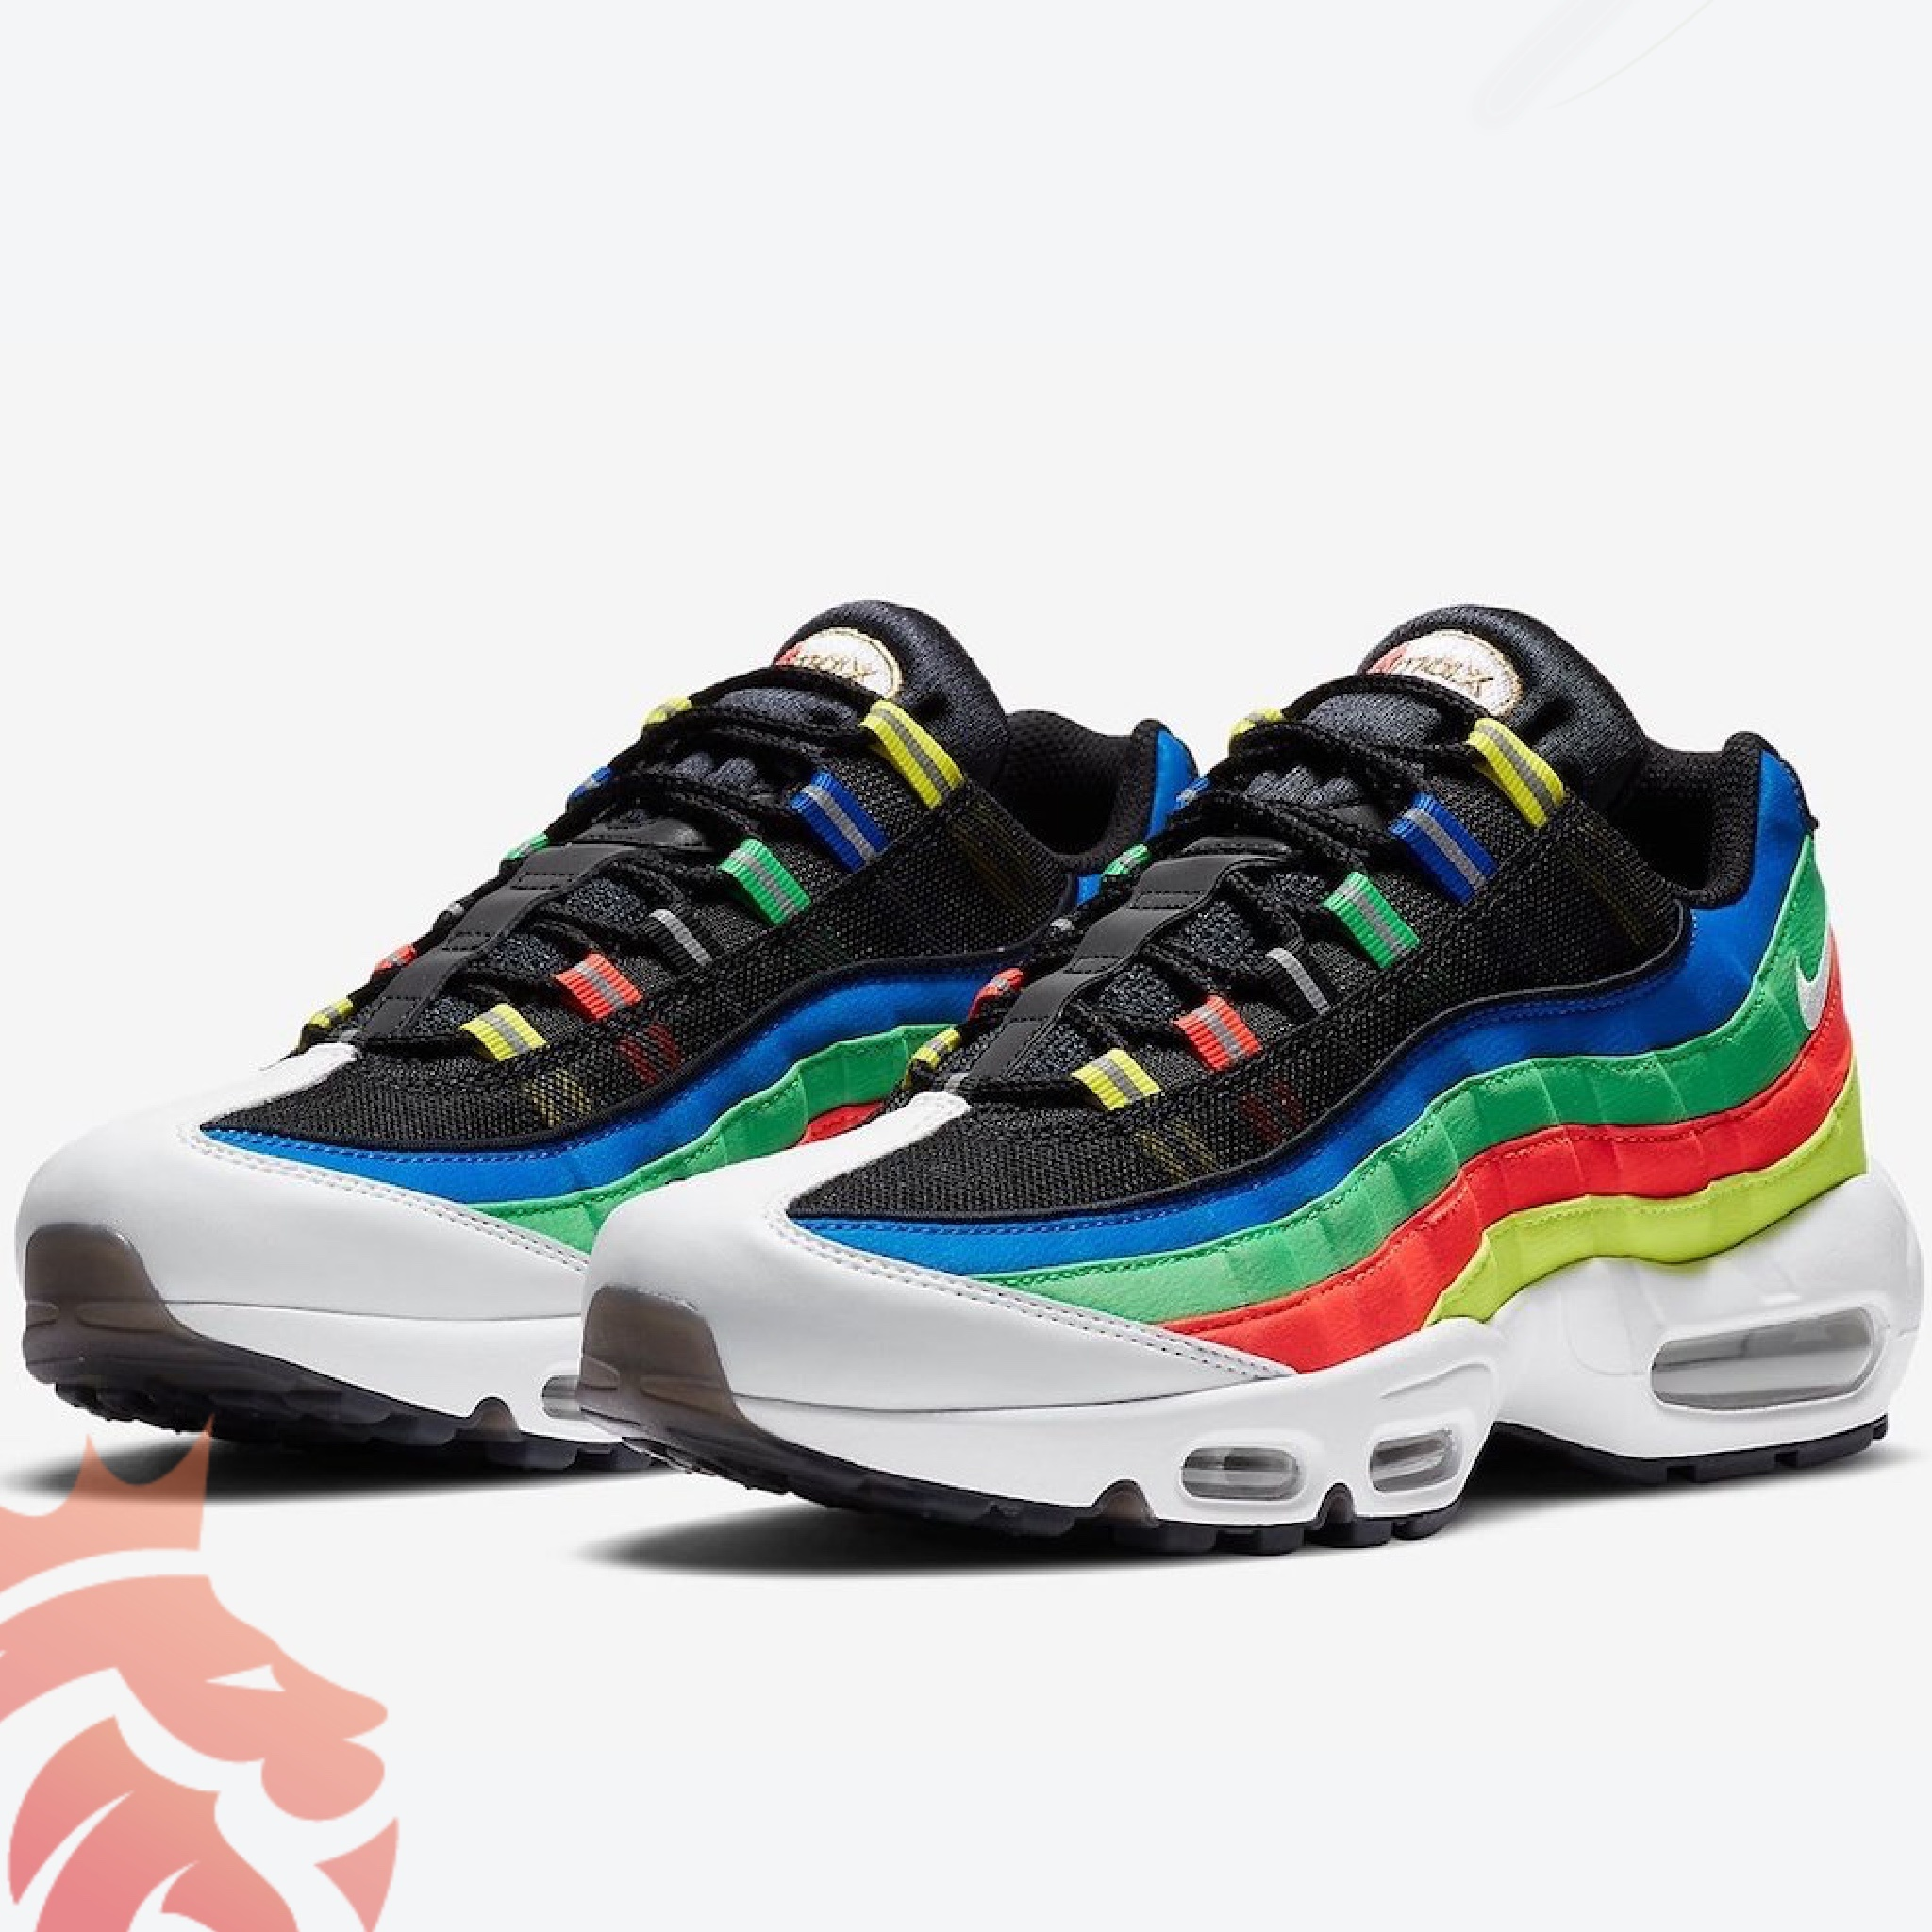 Nike Air Max 95 Olympic DA1344-014 Black/White-Racer Blue-Green Spark